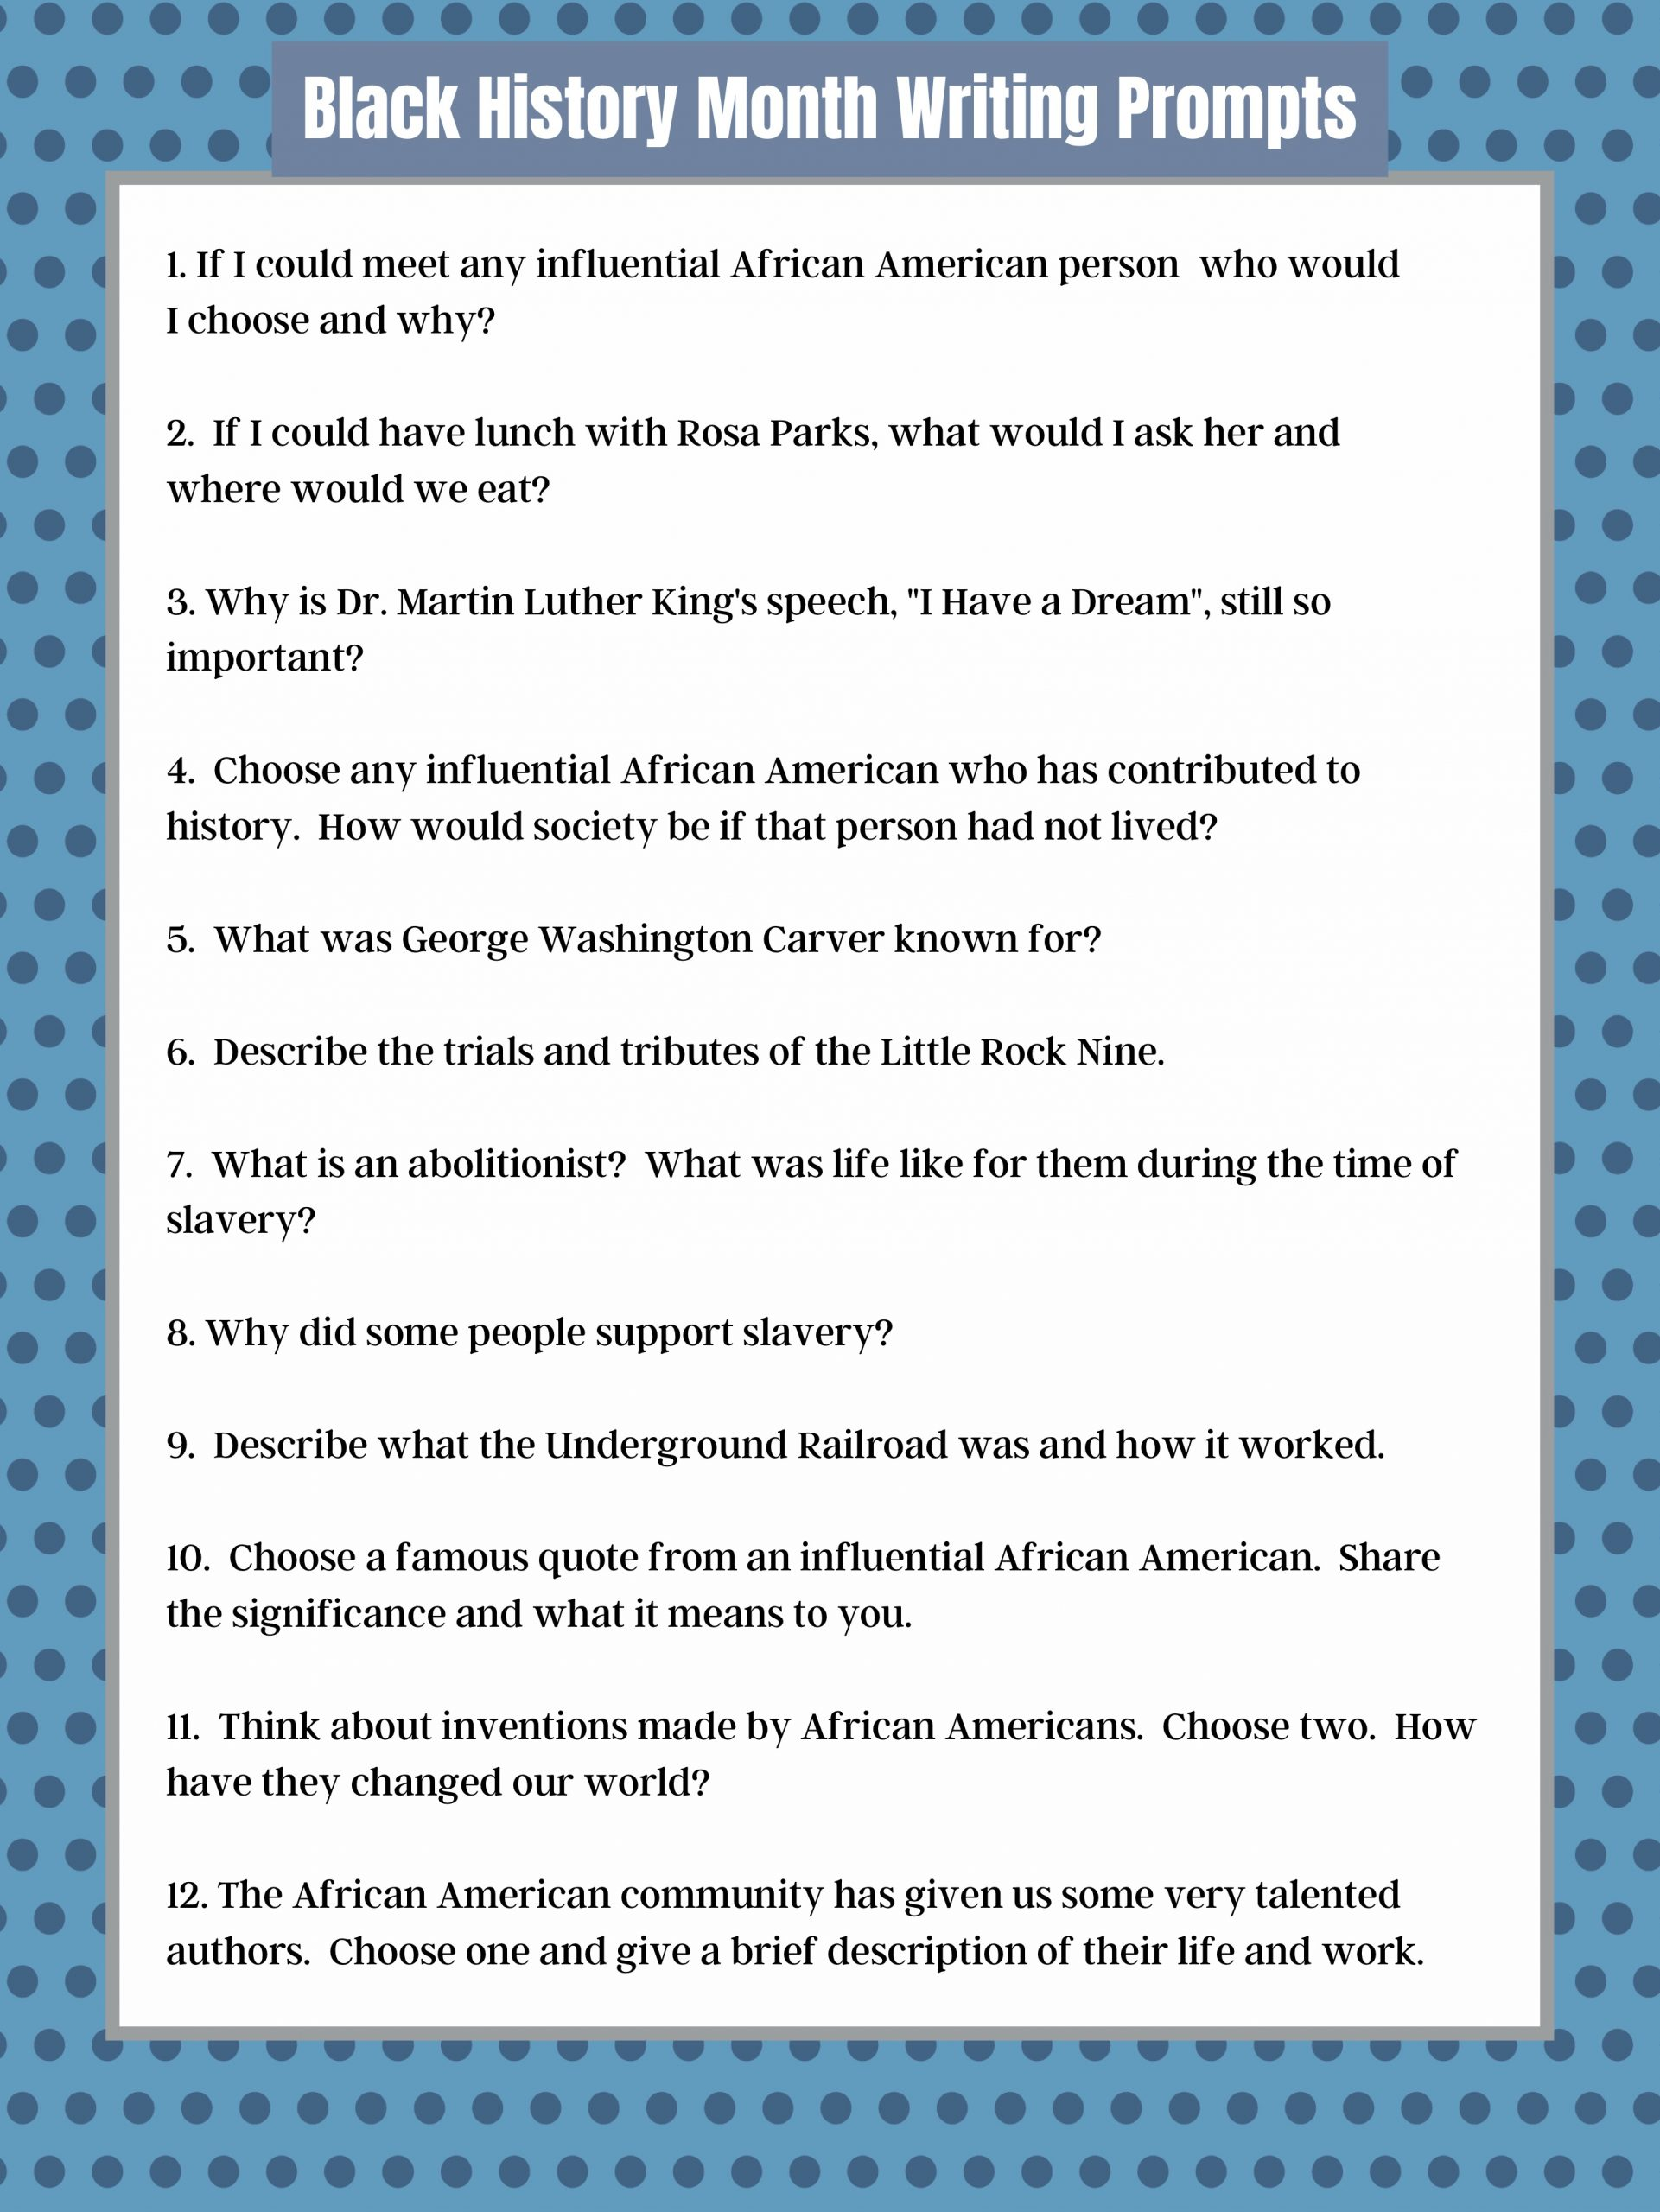 Black History Month Writing Prompts for Kids